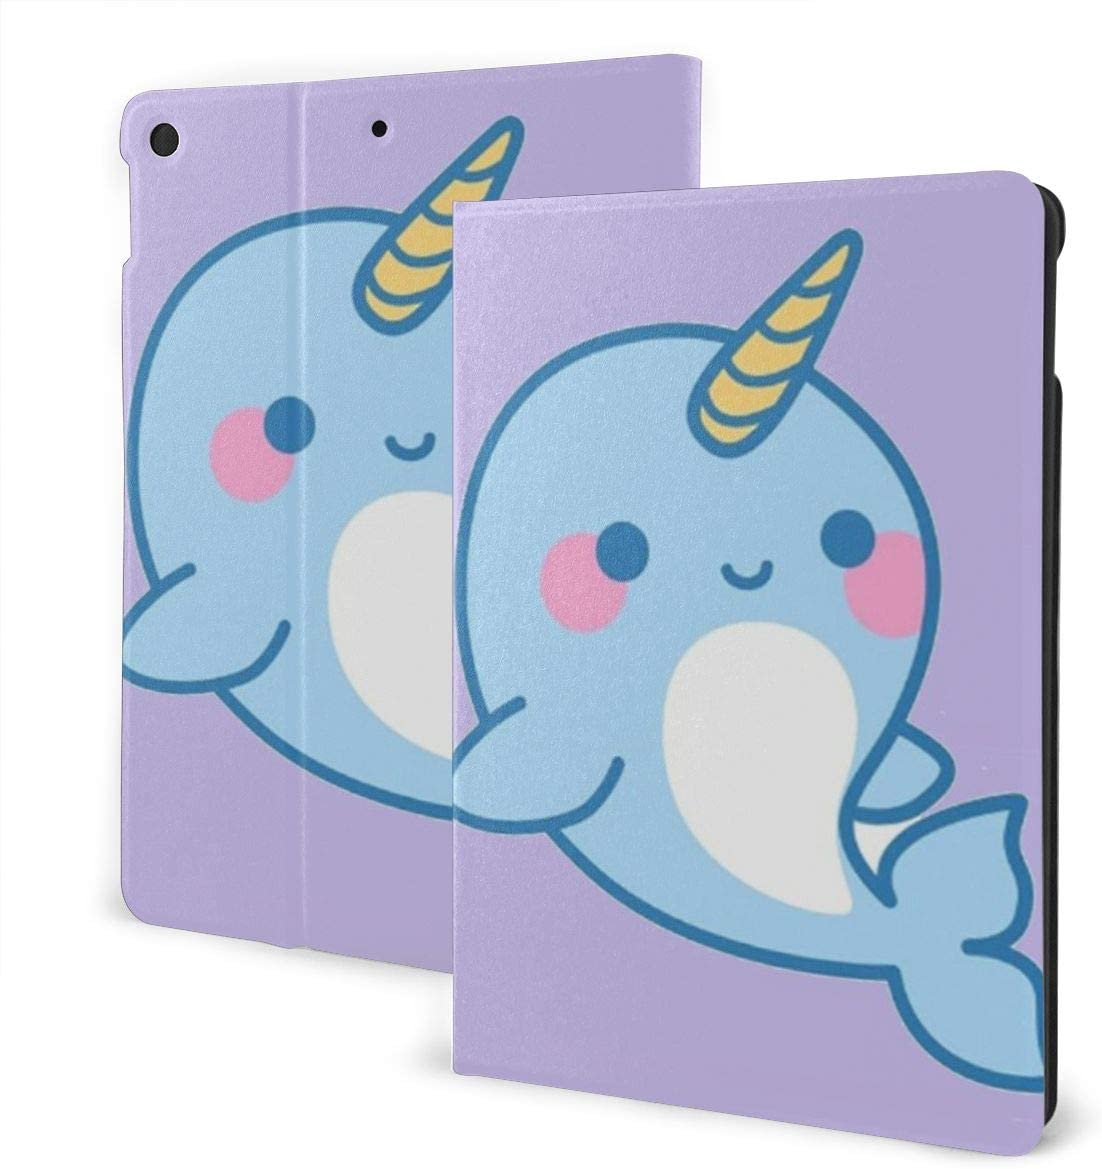 Narwhal for iPad 10.2 Case 2019 for iPad 7th Generation Case Premium Shockproof Case PU Leather Protective Smart Cover - Auto Wake/Sleep, Multiple Viewing Angles, Magnetic Closure